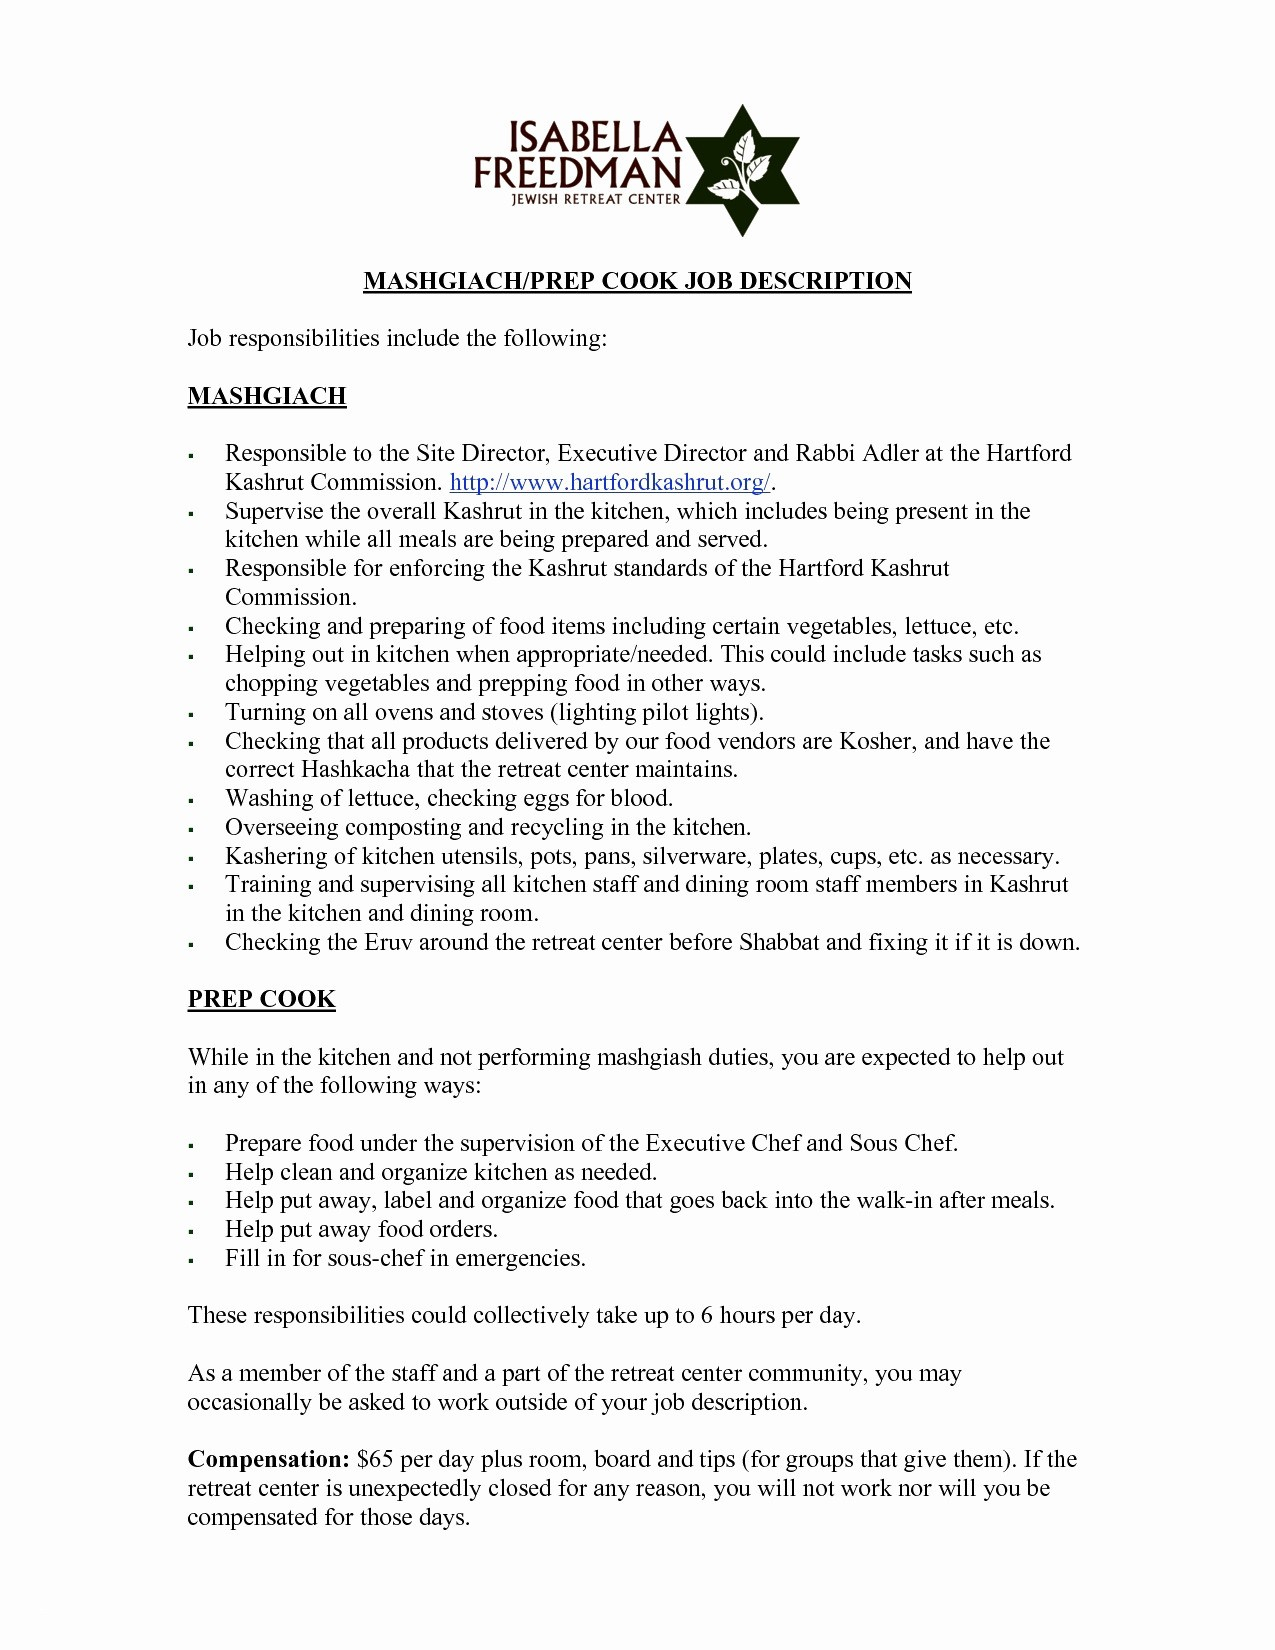 Marketing Letter Template Free - Cover Letter Job Sample Fresh Resume Doc Template Luxury Resume and